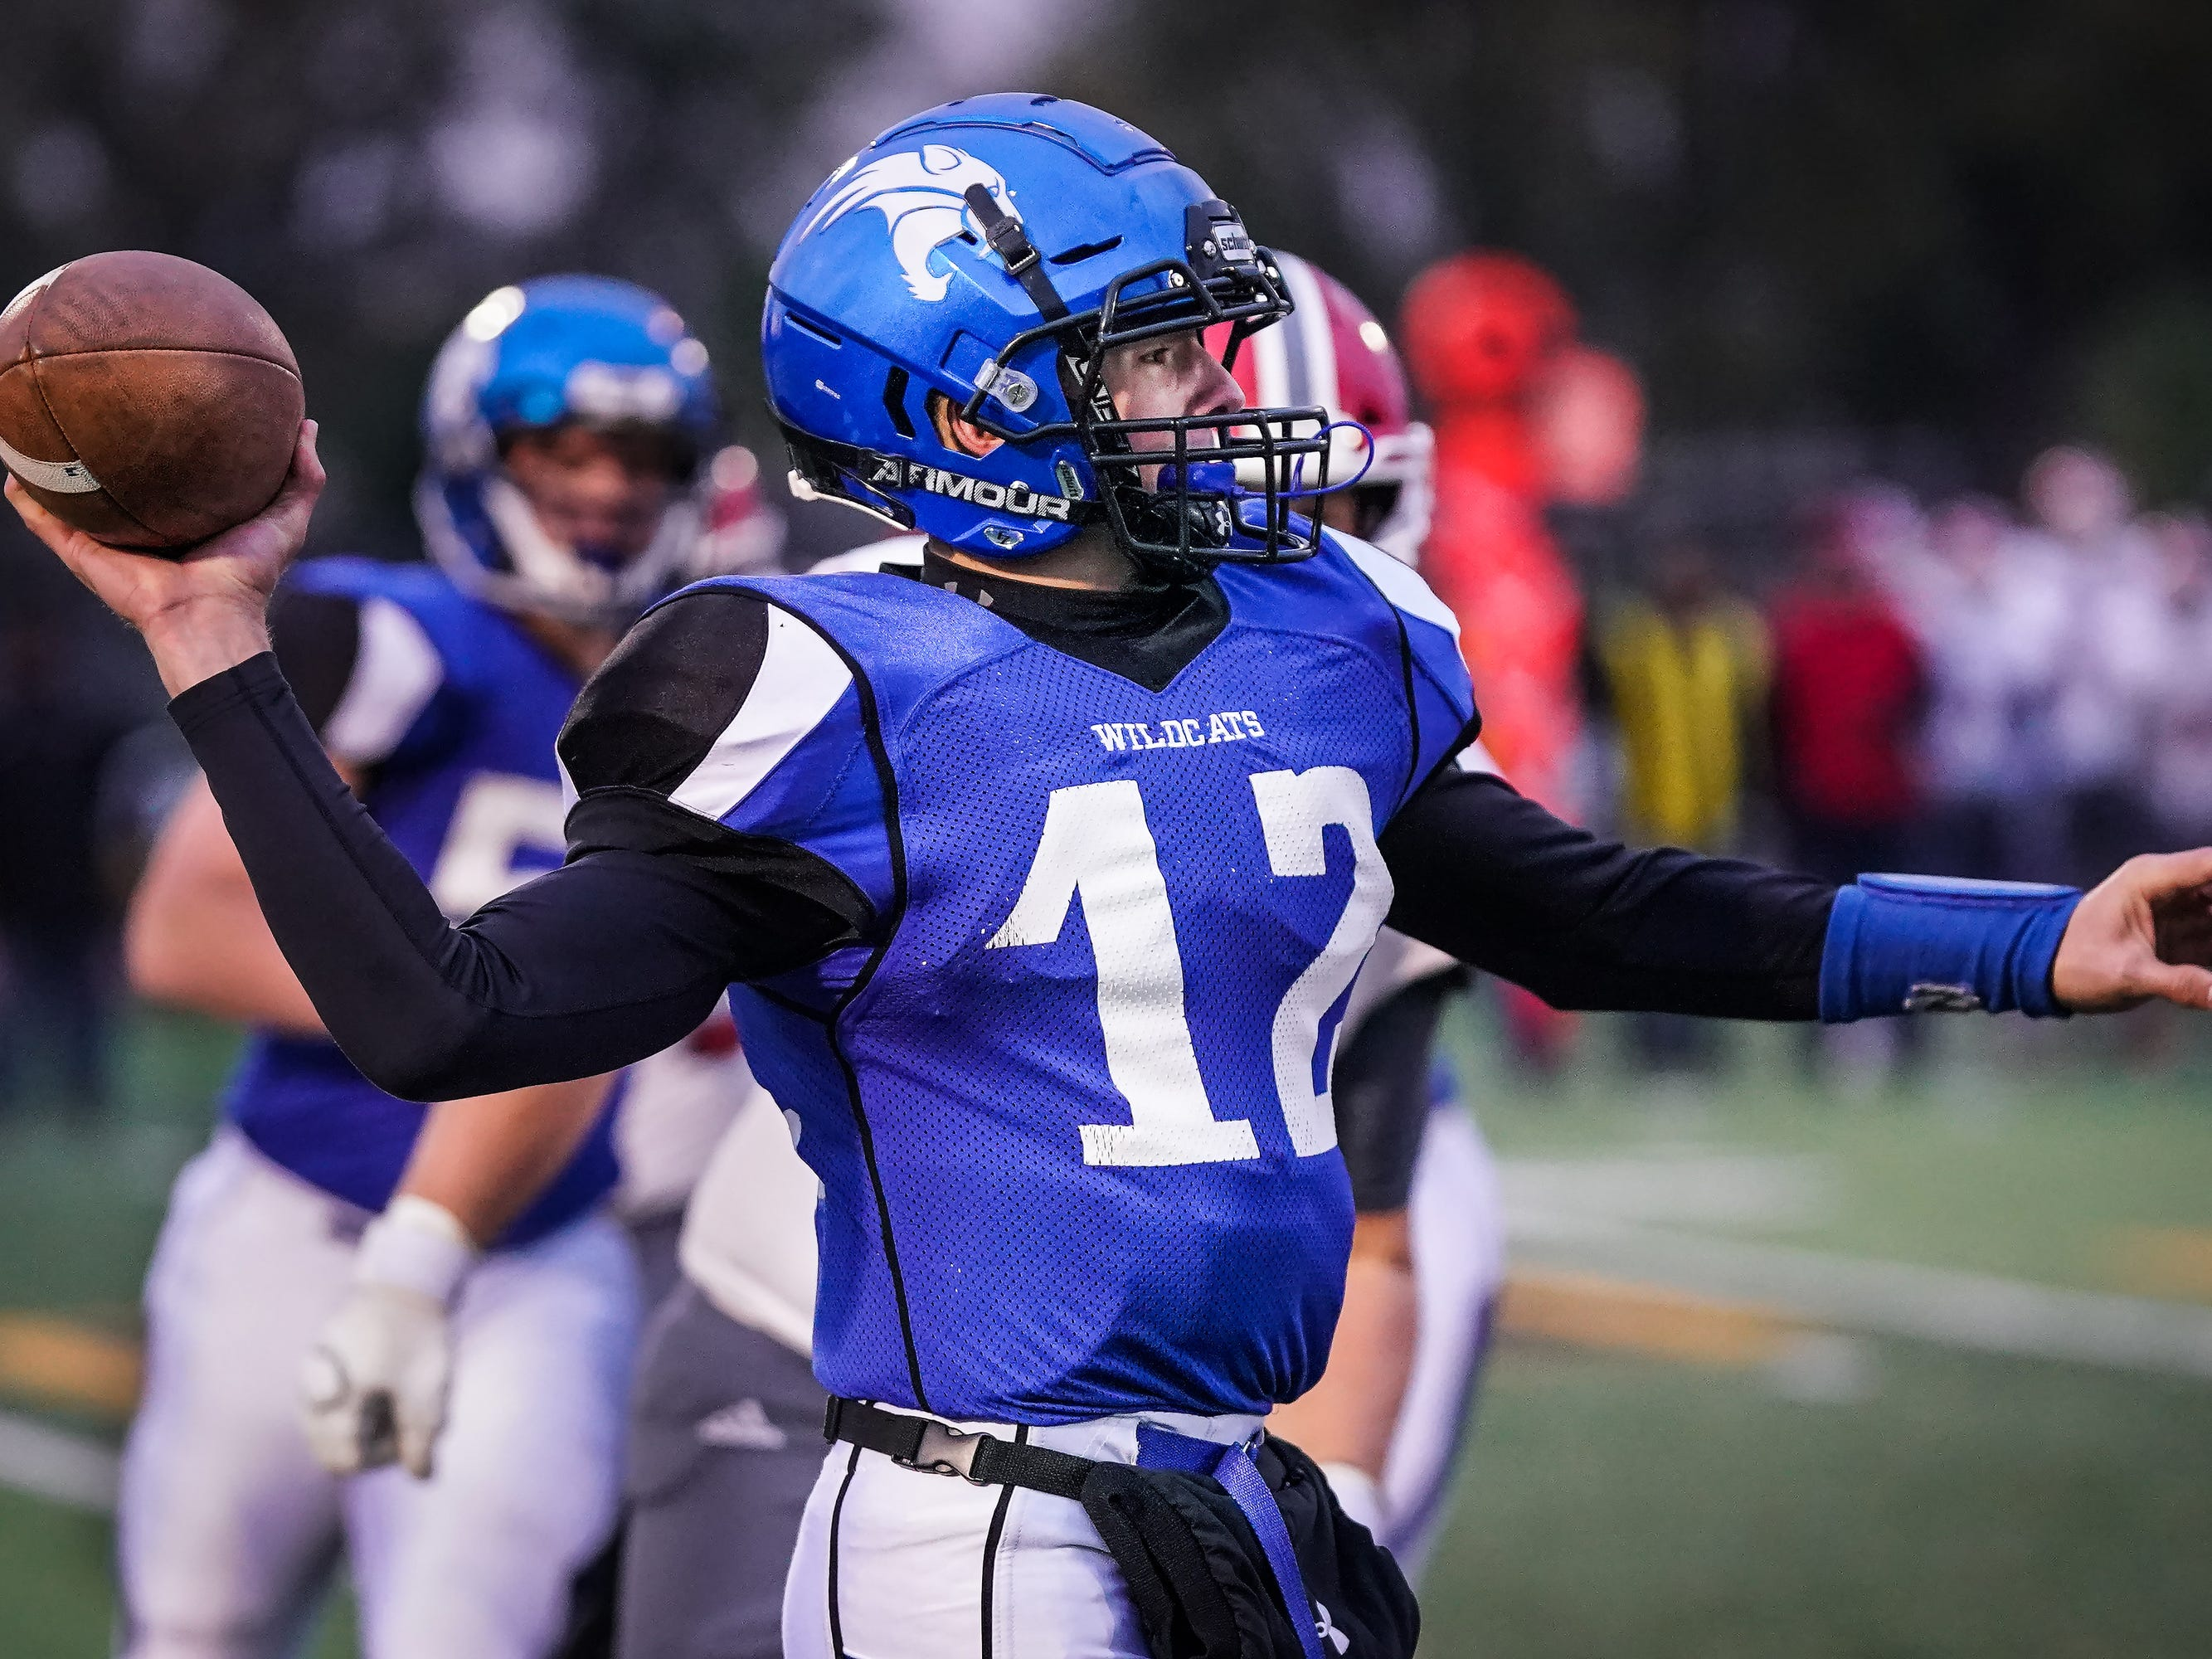 Oshkosh West quarterback Jake Ketter (12) drops back to pass. The Oshkosh West Wildcats hosted the Neenah Rockets in an FVA-South conference matchup Friday evening, October 12, 2018 at J. J. Keller Field at Titan Stadium.